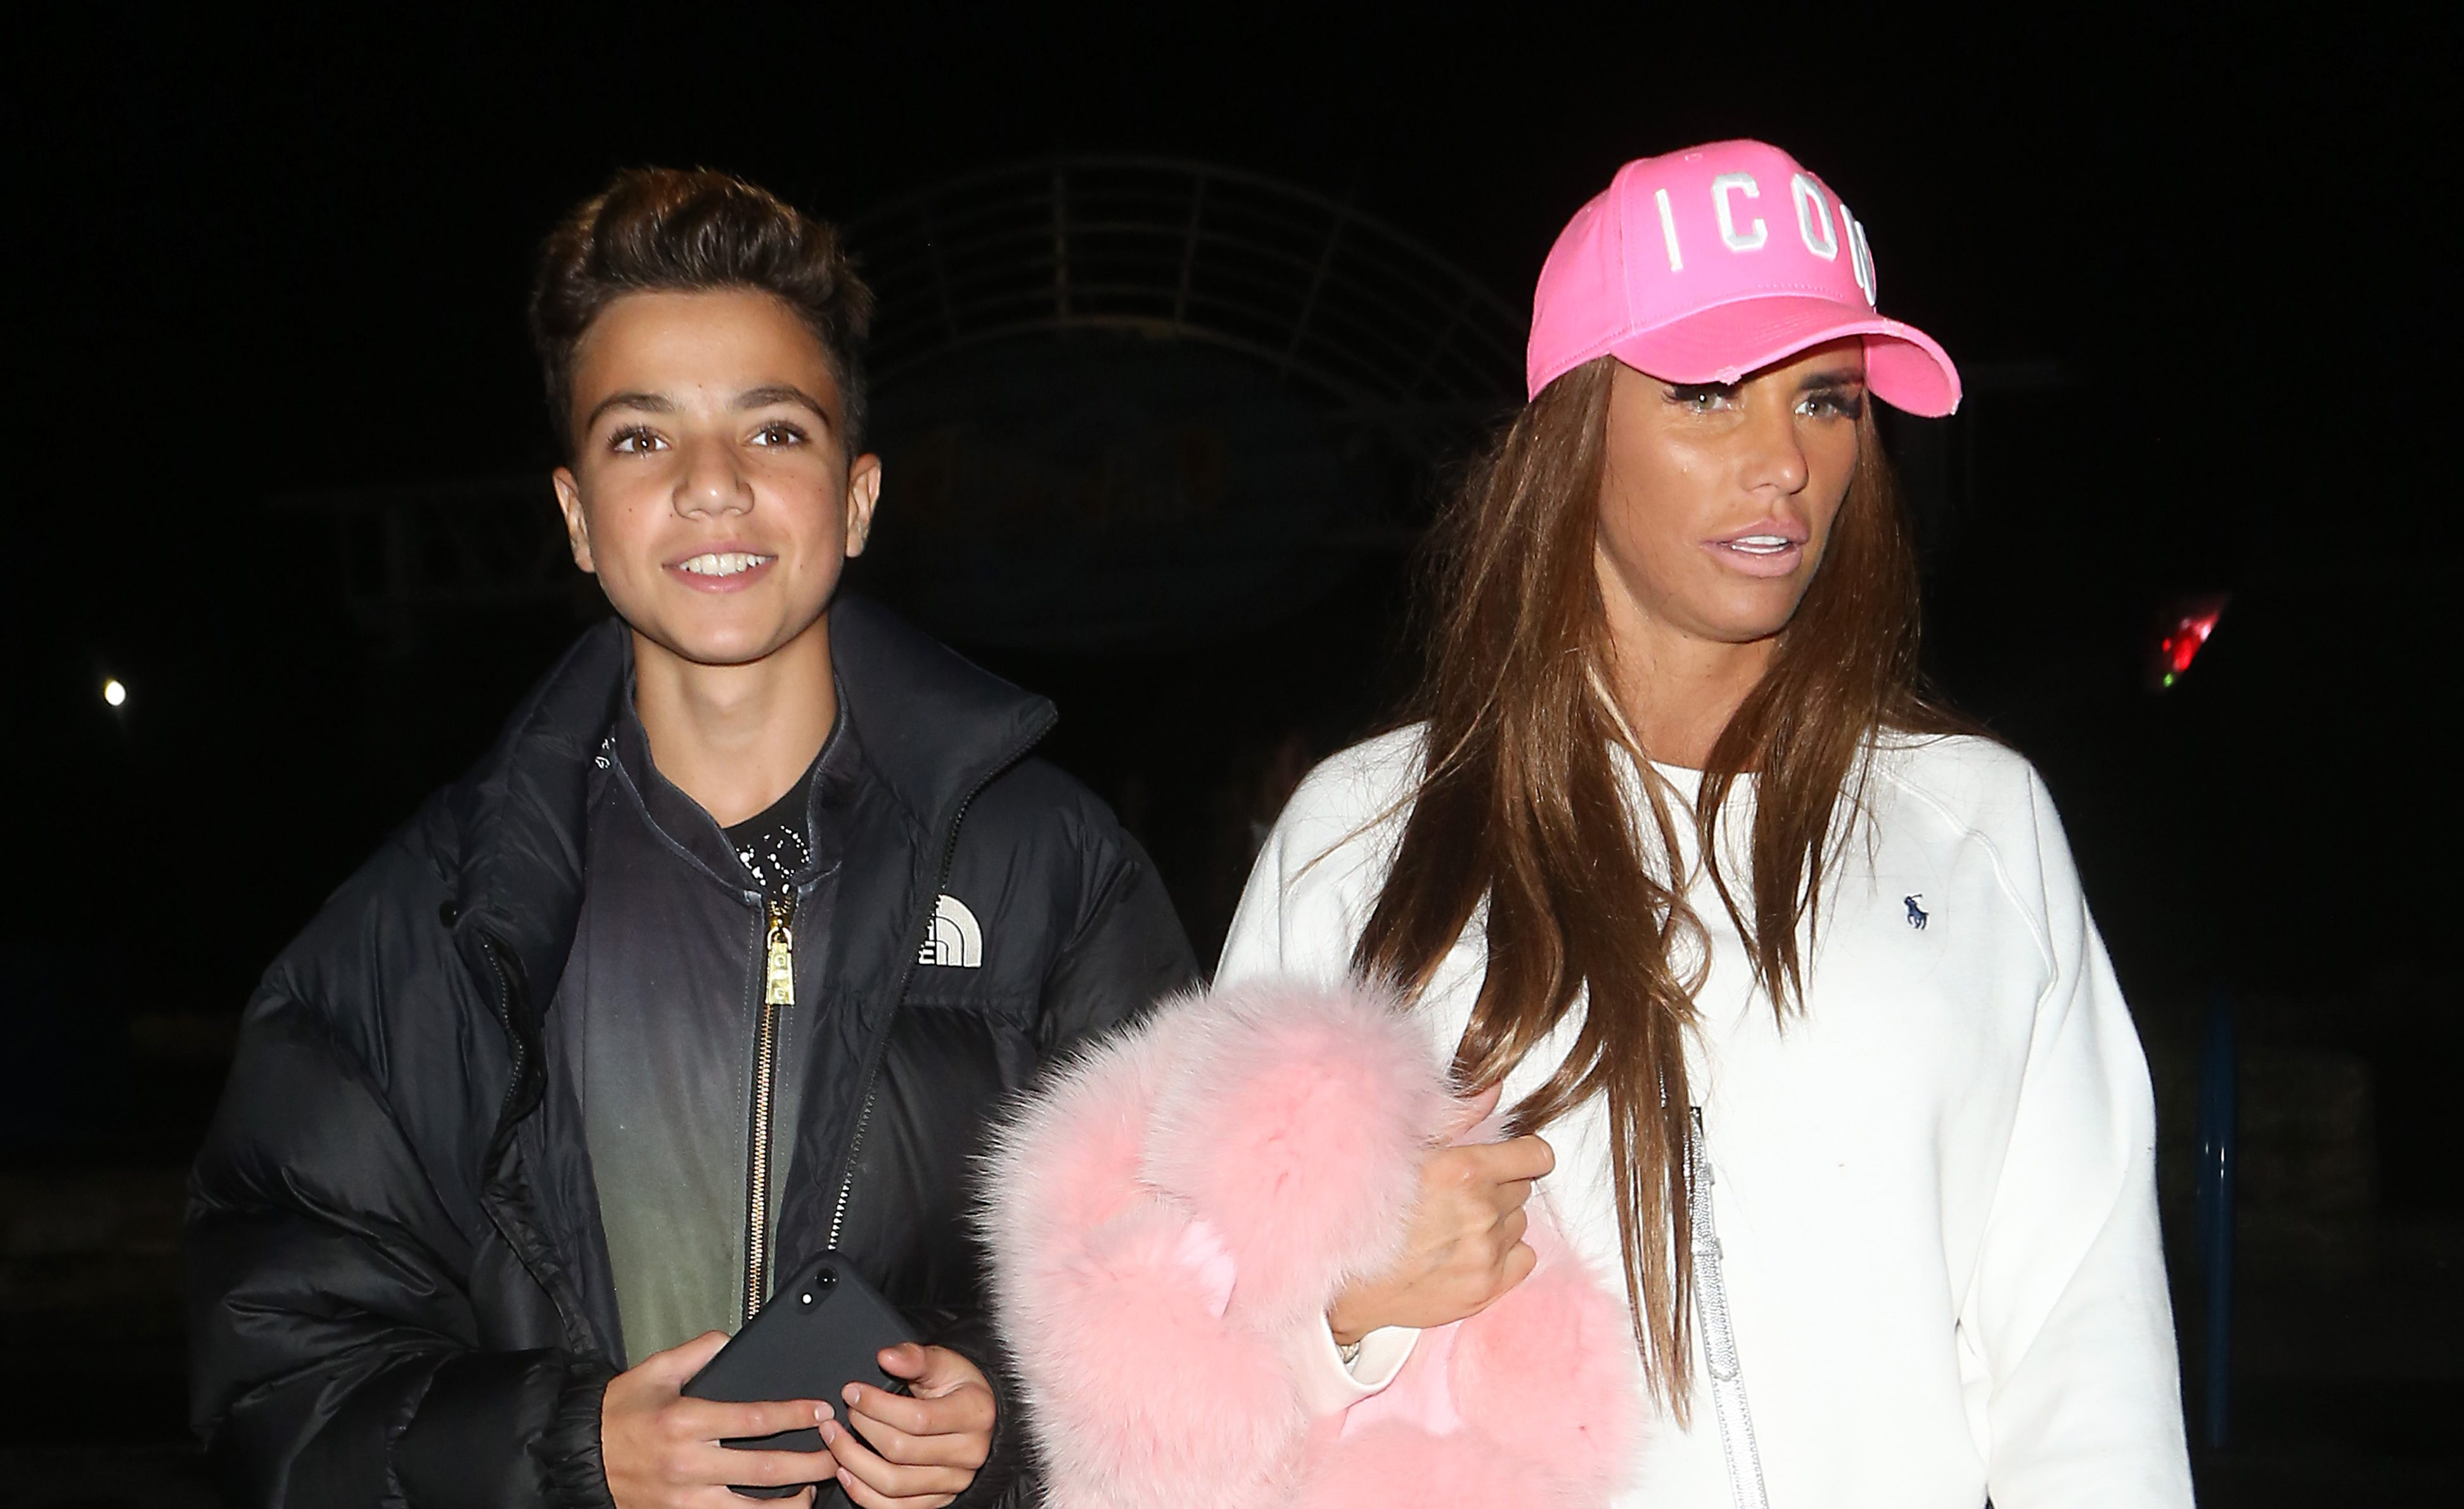 Katie Price's son Junior hits back at troll who slammed his mum's parenting skills